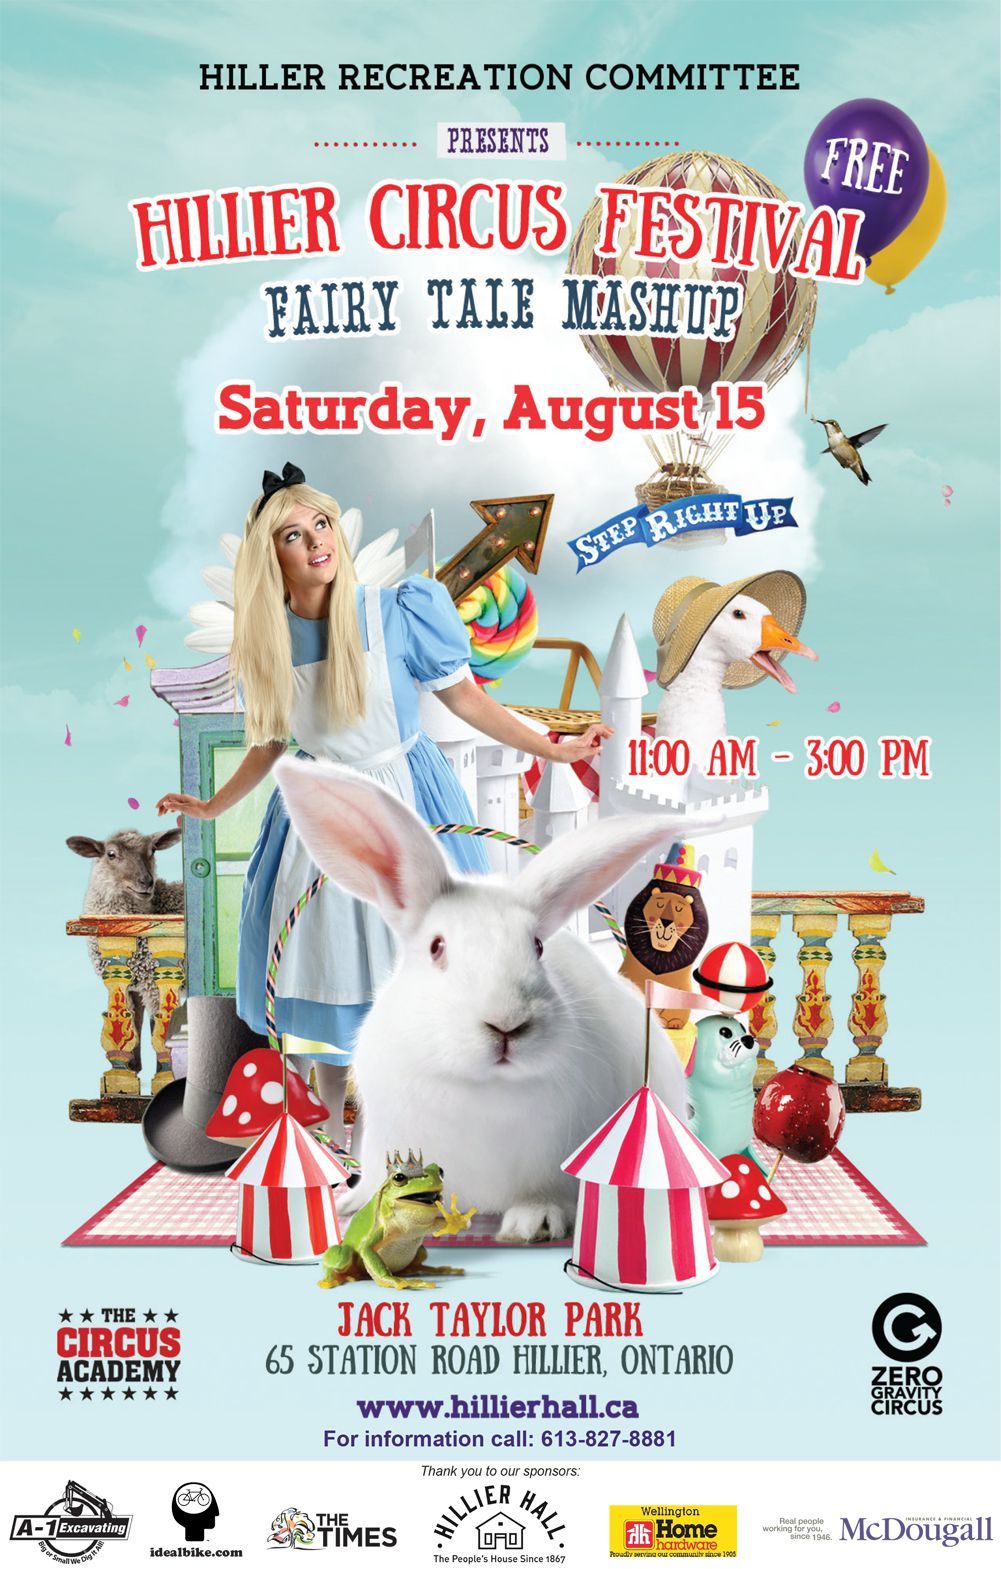 Hillier Circus Festival - Saturday, August 15